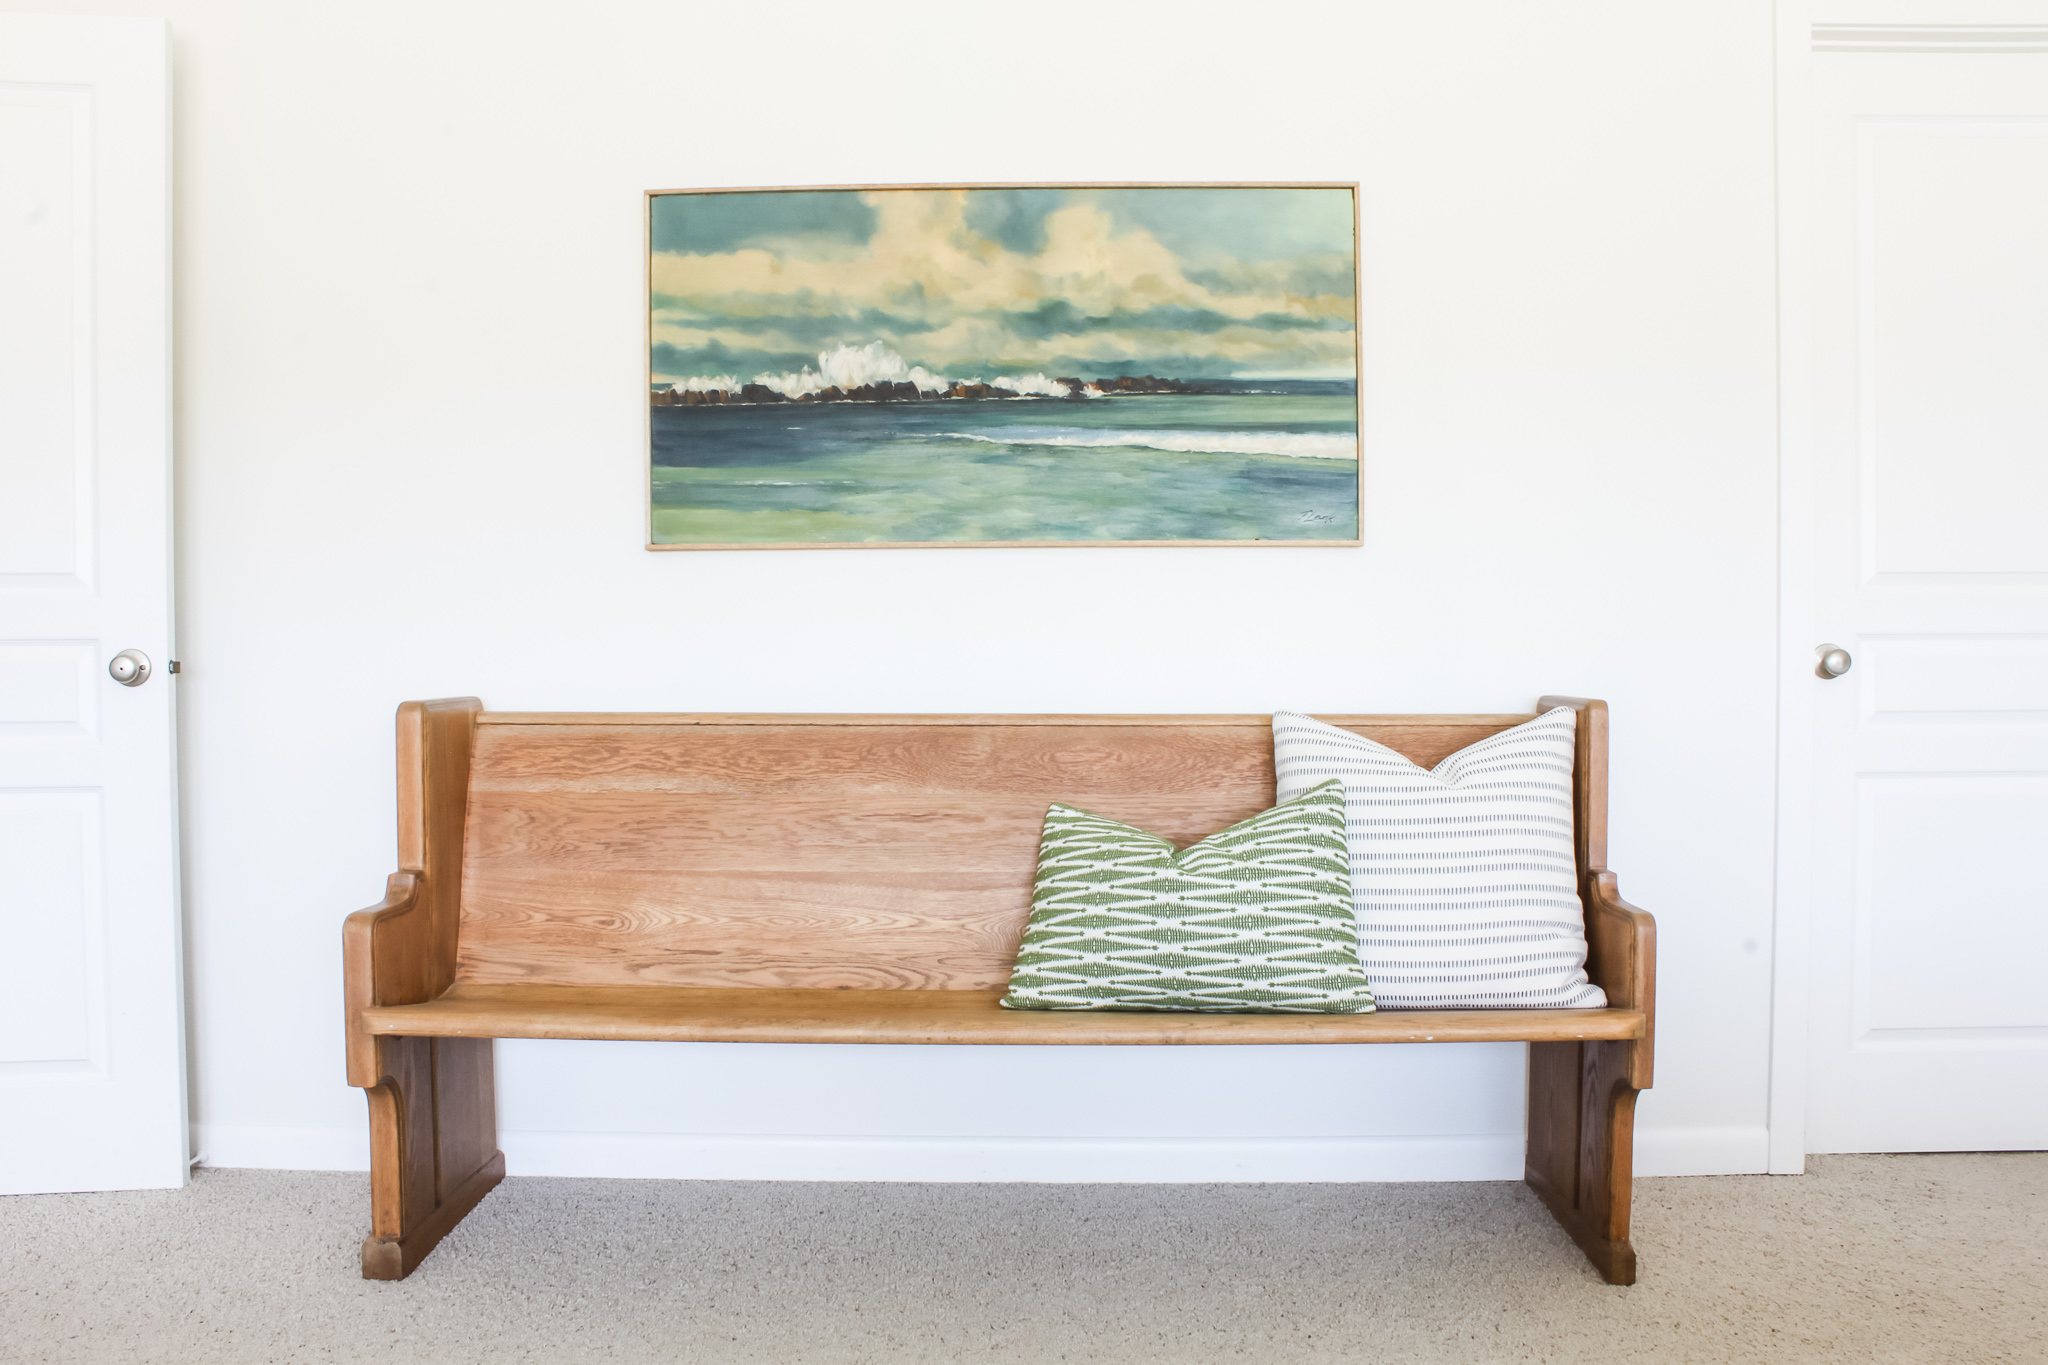 Grandpa's church pew fits perfectly with the old SUU Institute landscape painting | gypsy magpie